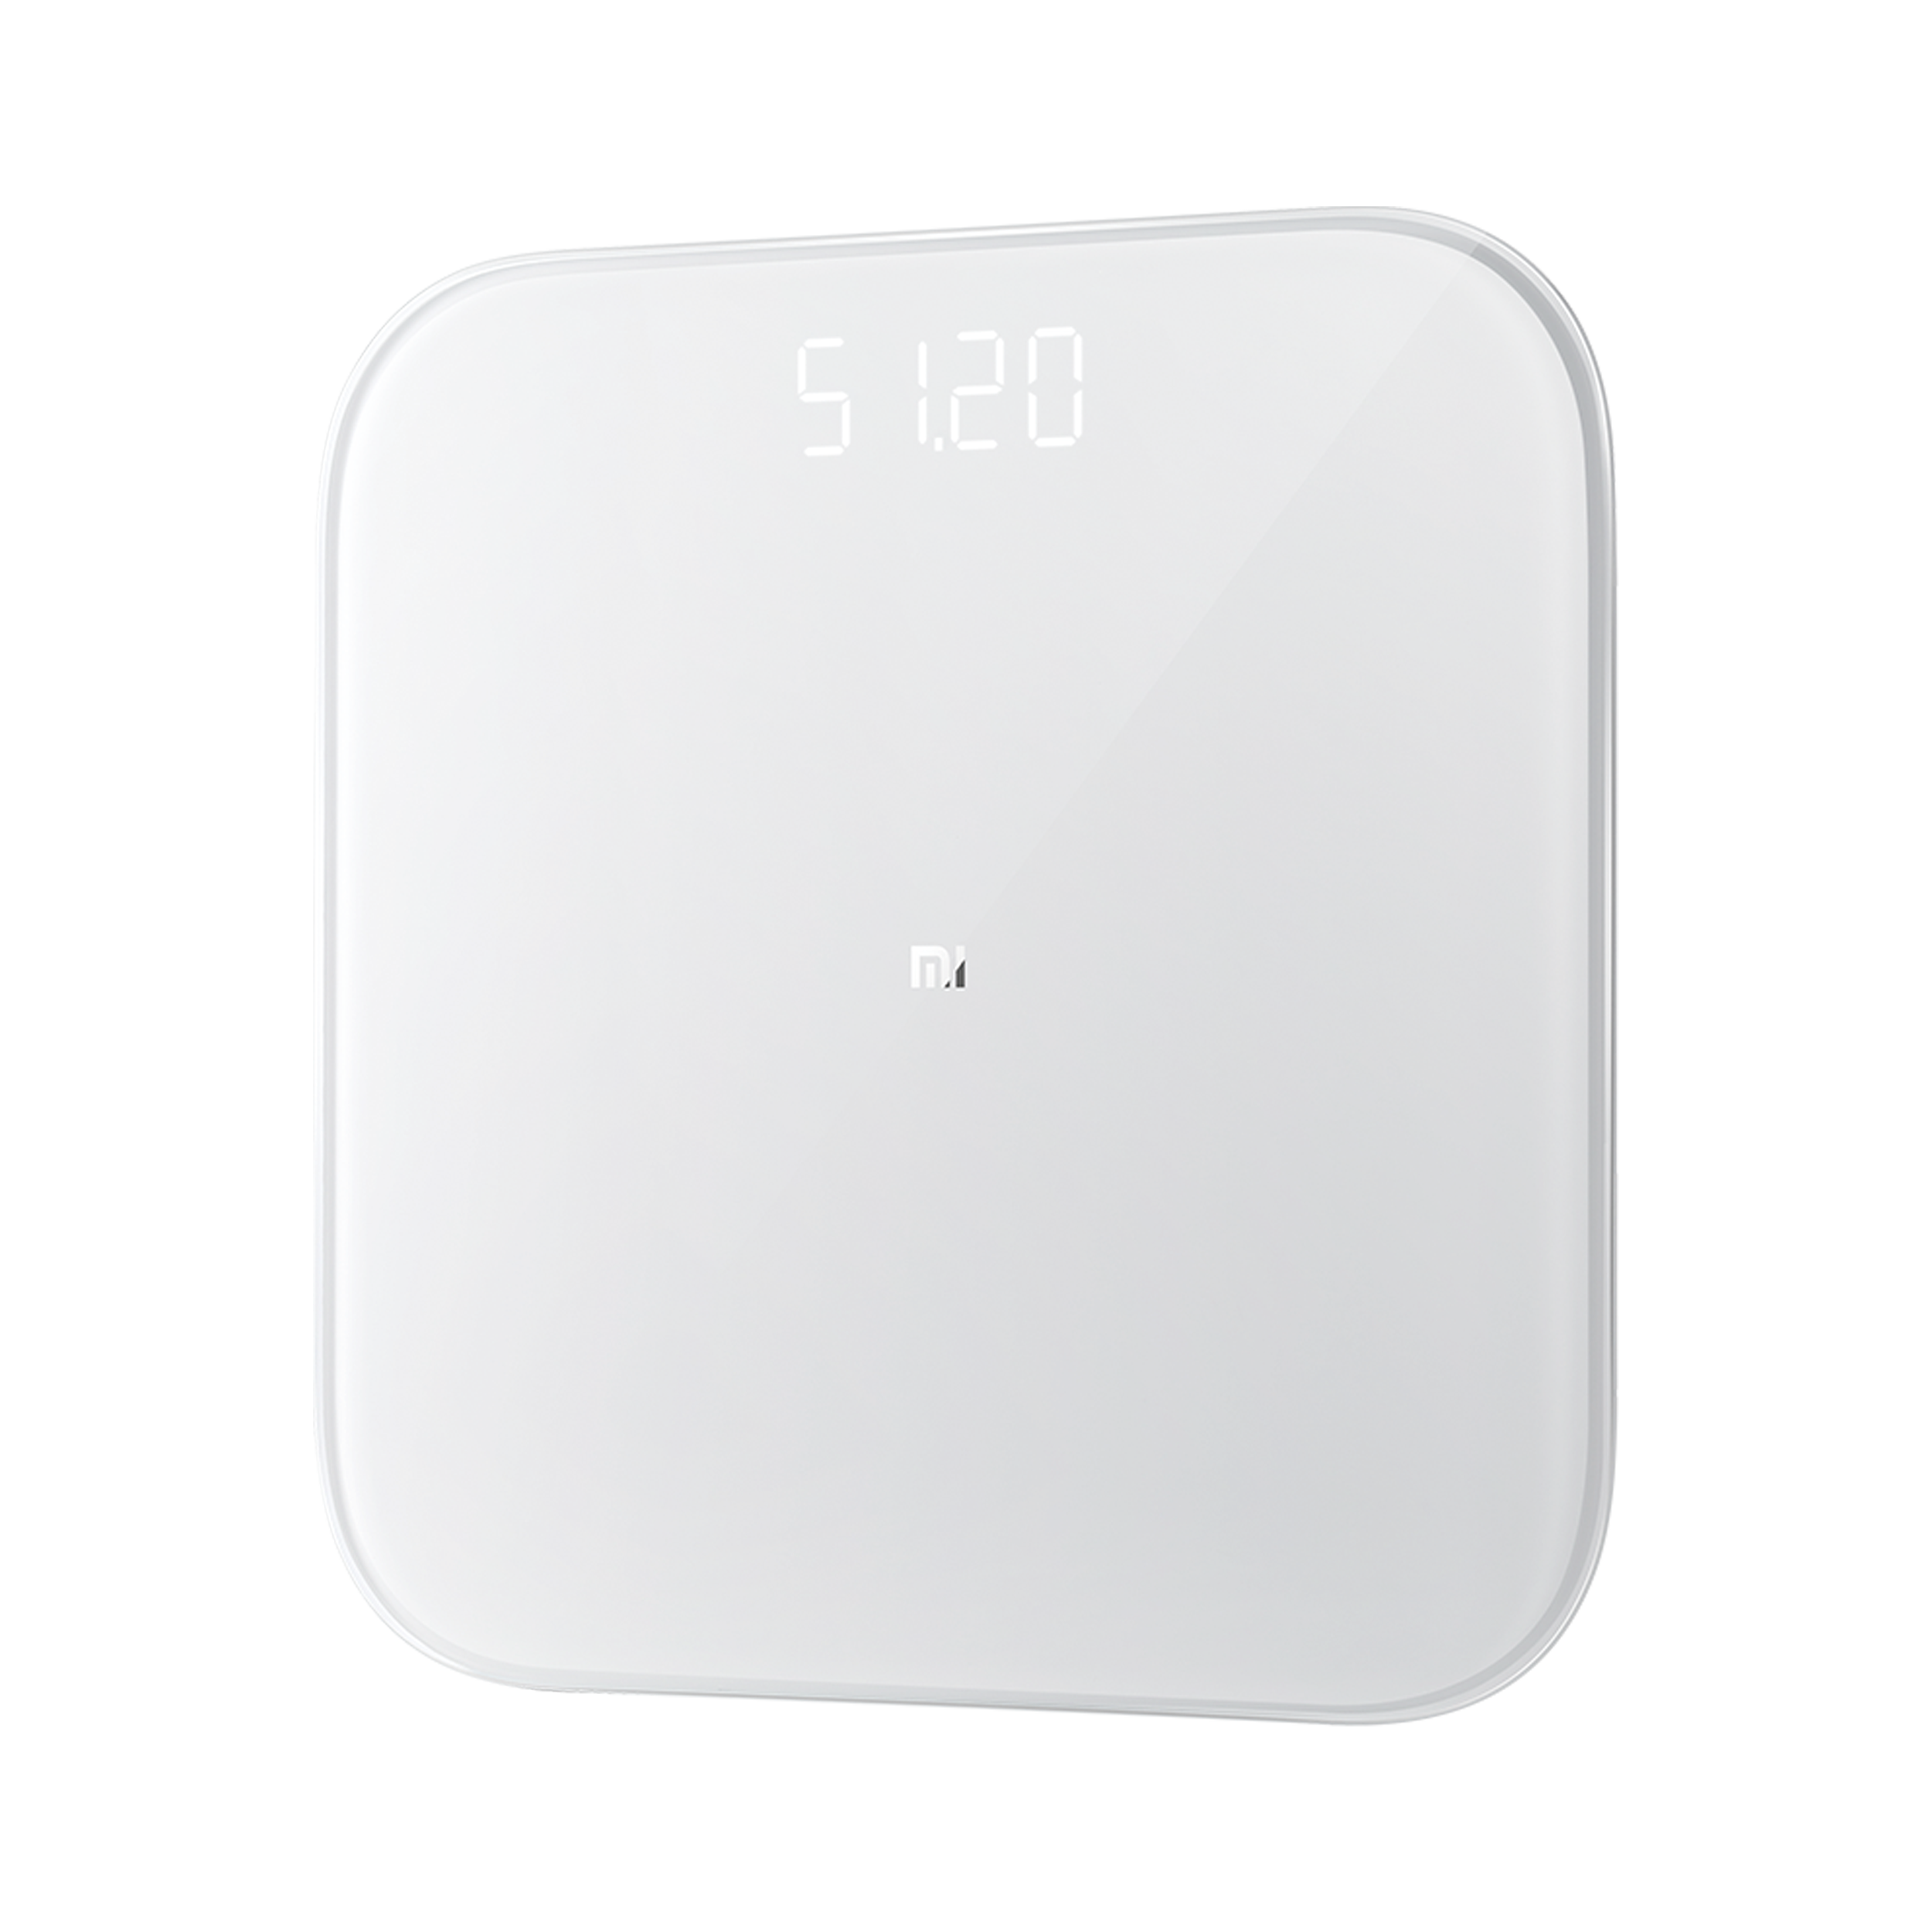 MI Smart Weight Scale, 2nd Generation